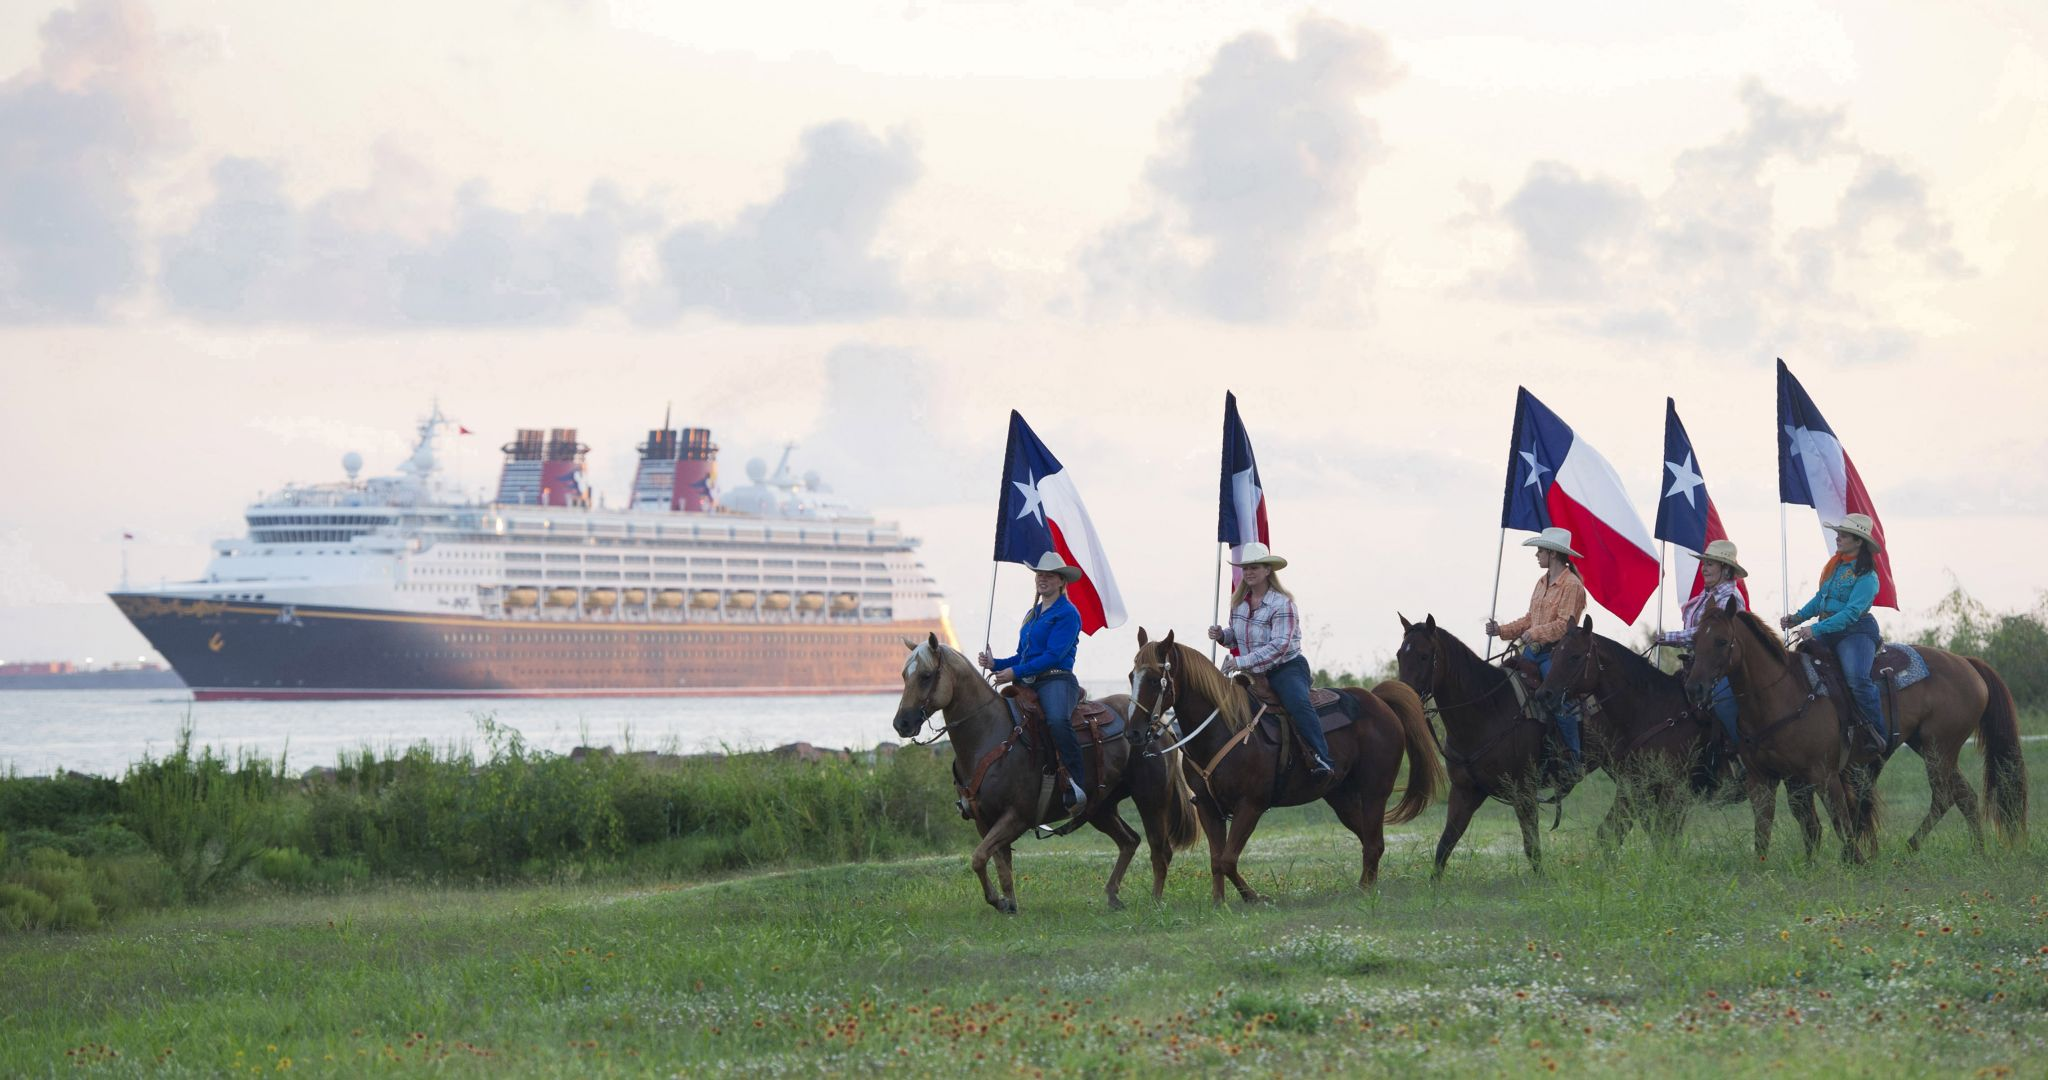 Disney Cruise Line to launch new voyages from Galveston to Caribbean and Bahamas